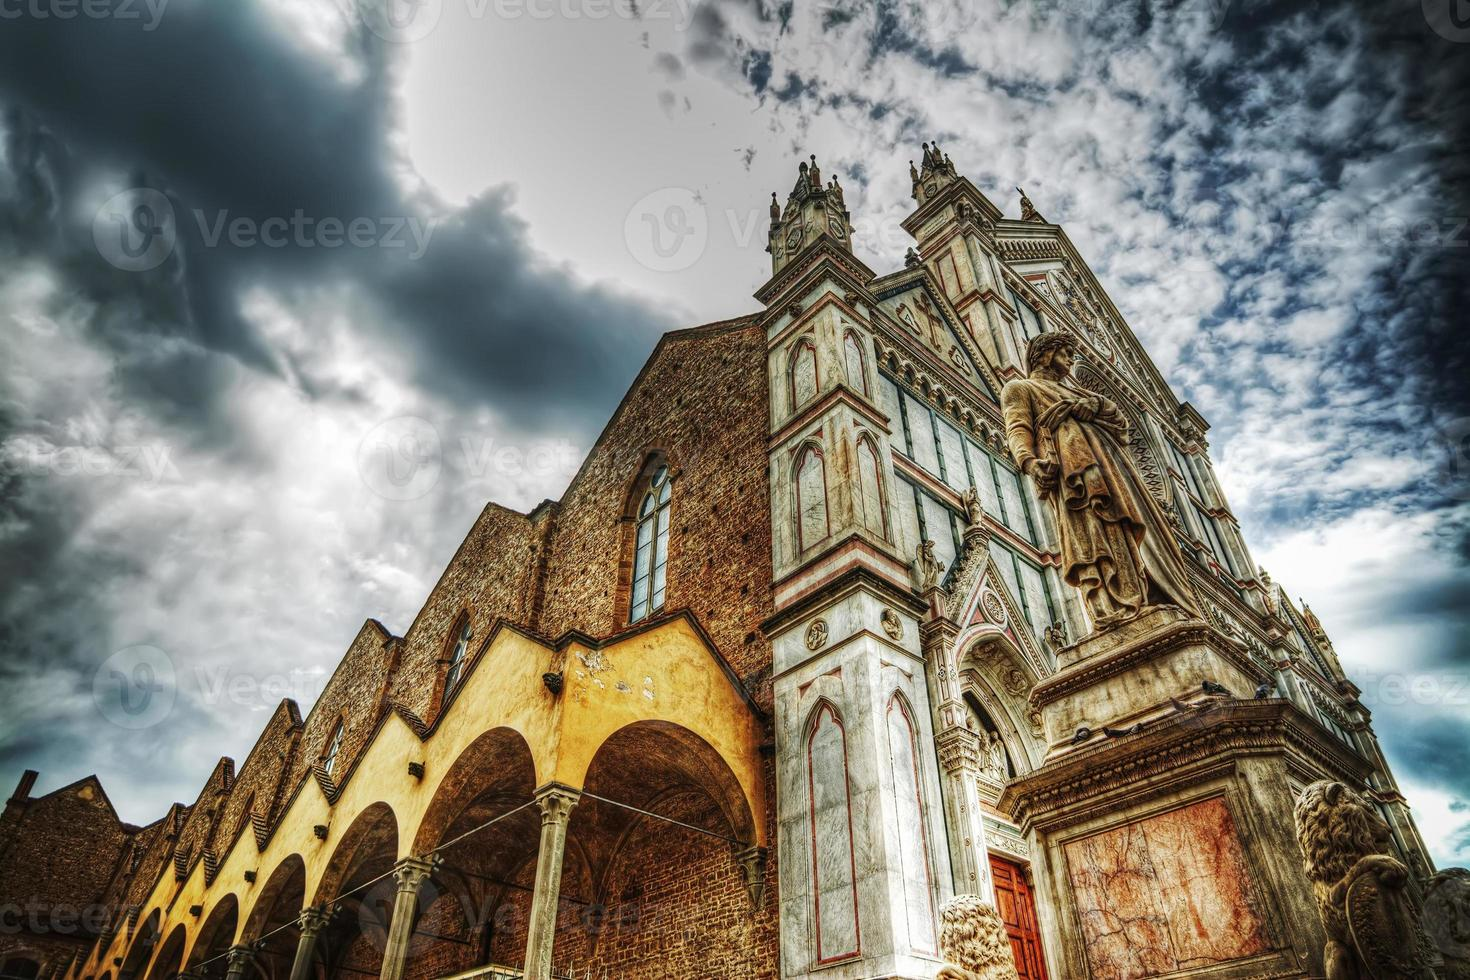 Santa Croce-kathedraal in hdr-tonemapping-effect foto